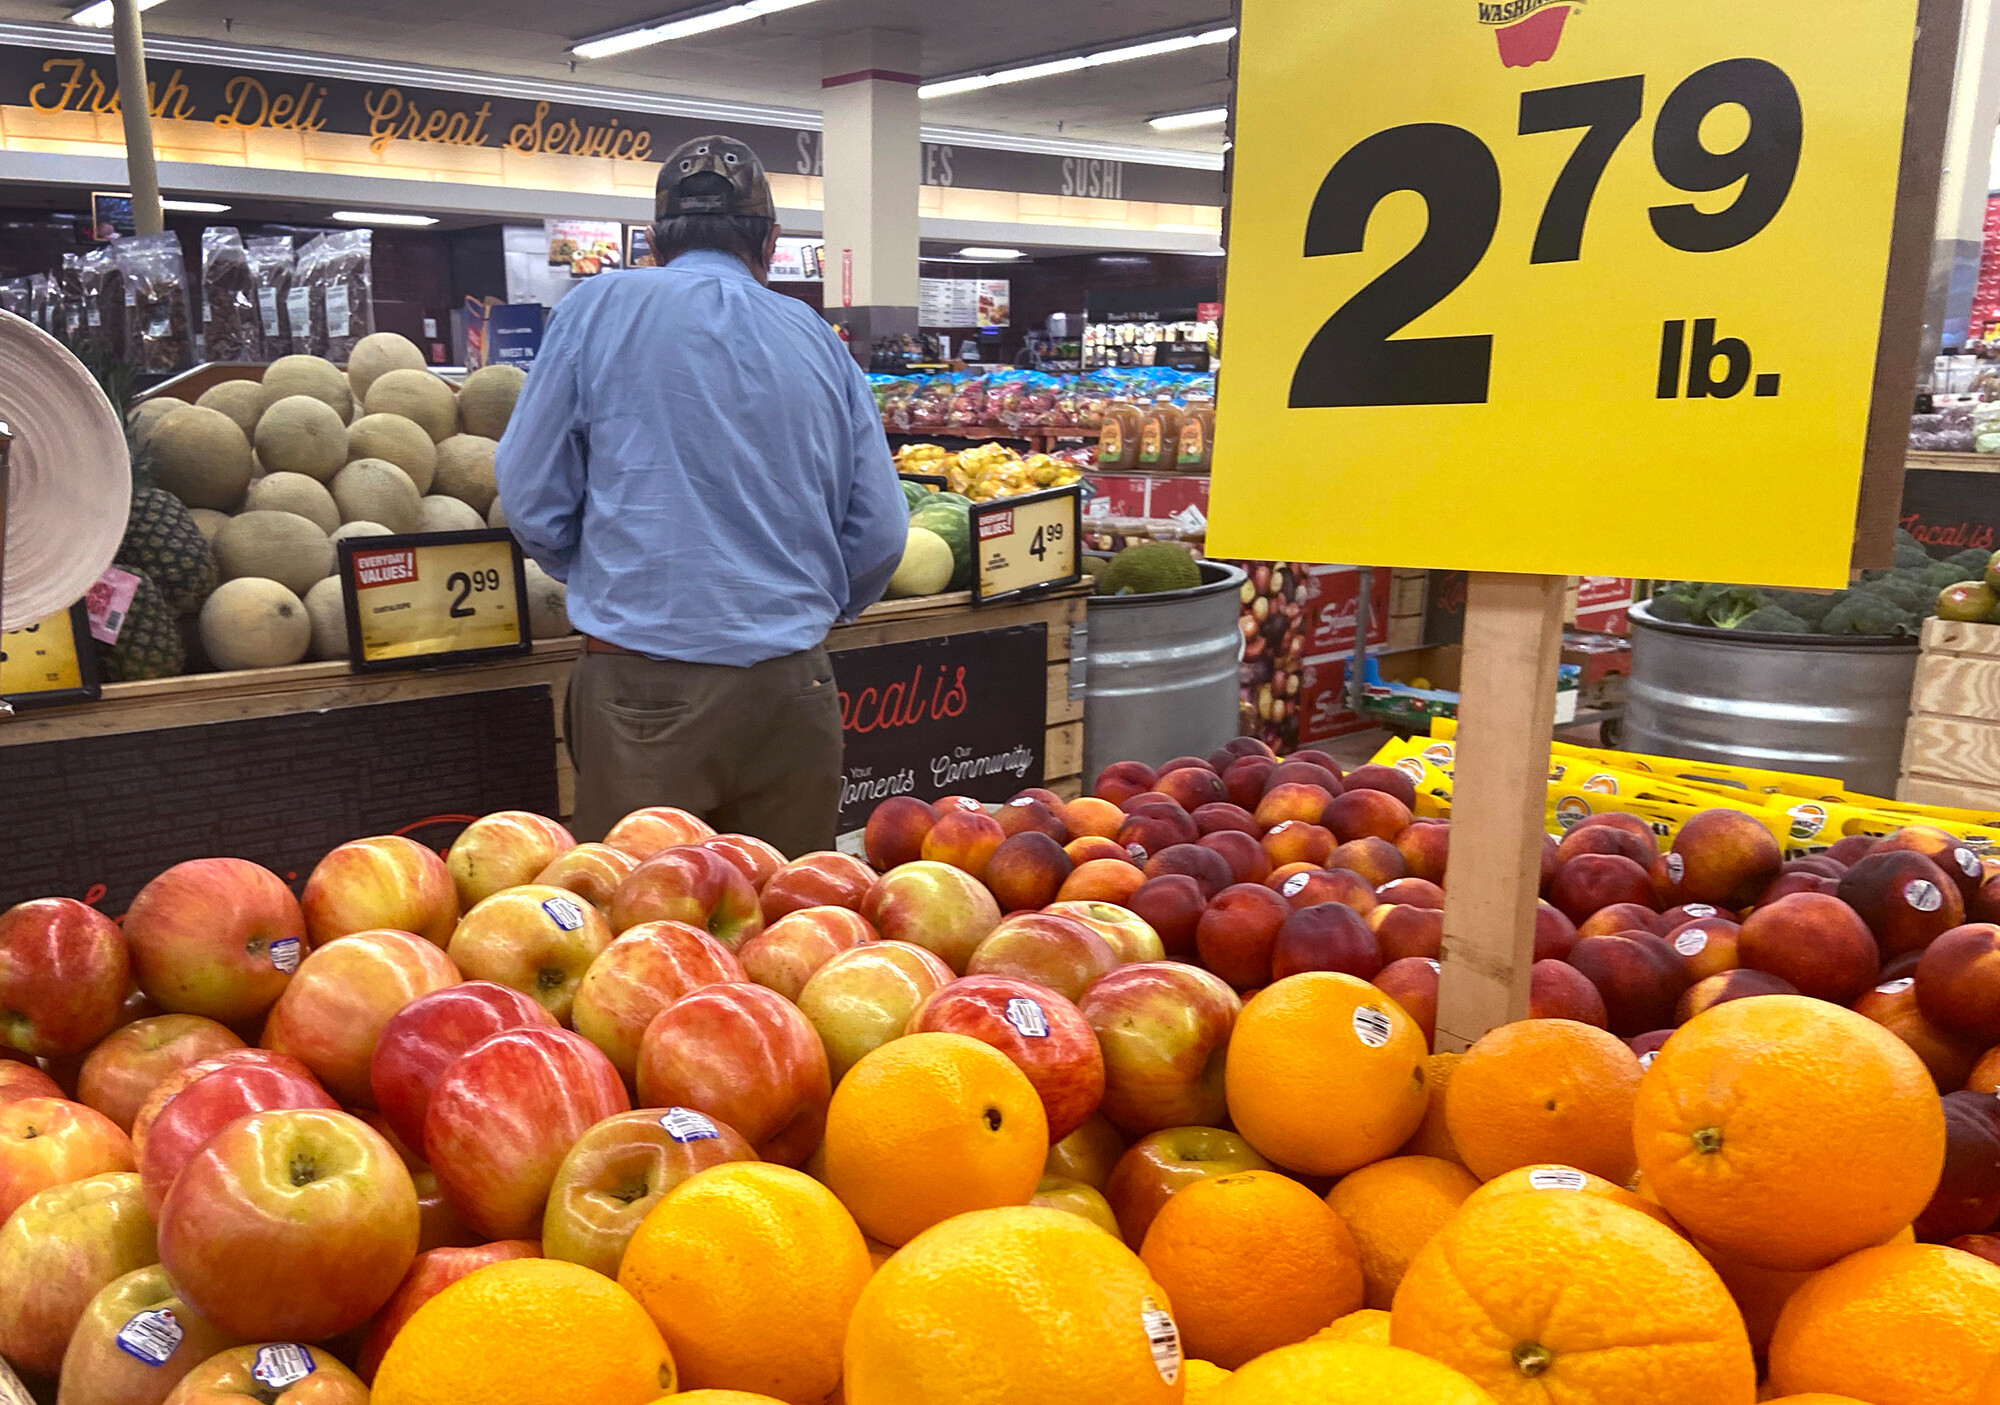 Prices are still rising. Here's what's getting more expensive